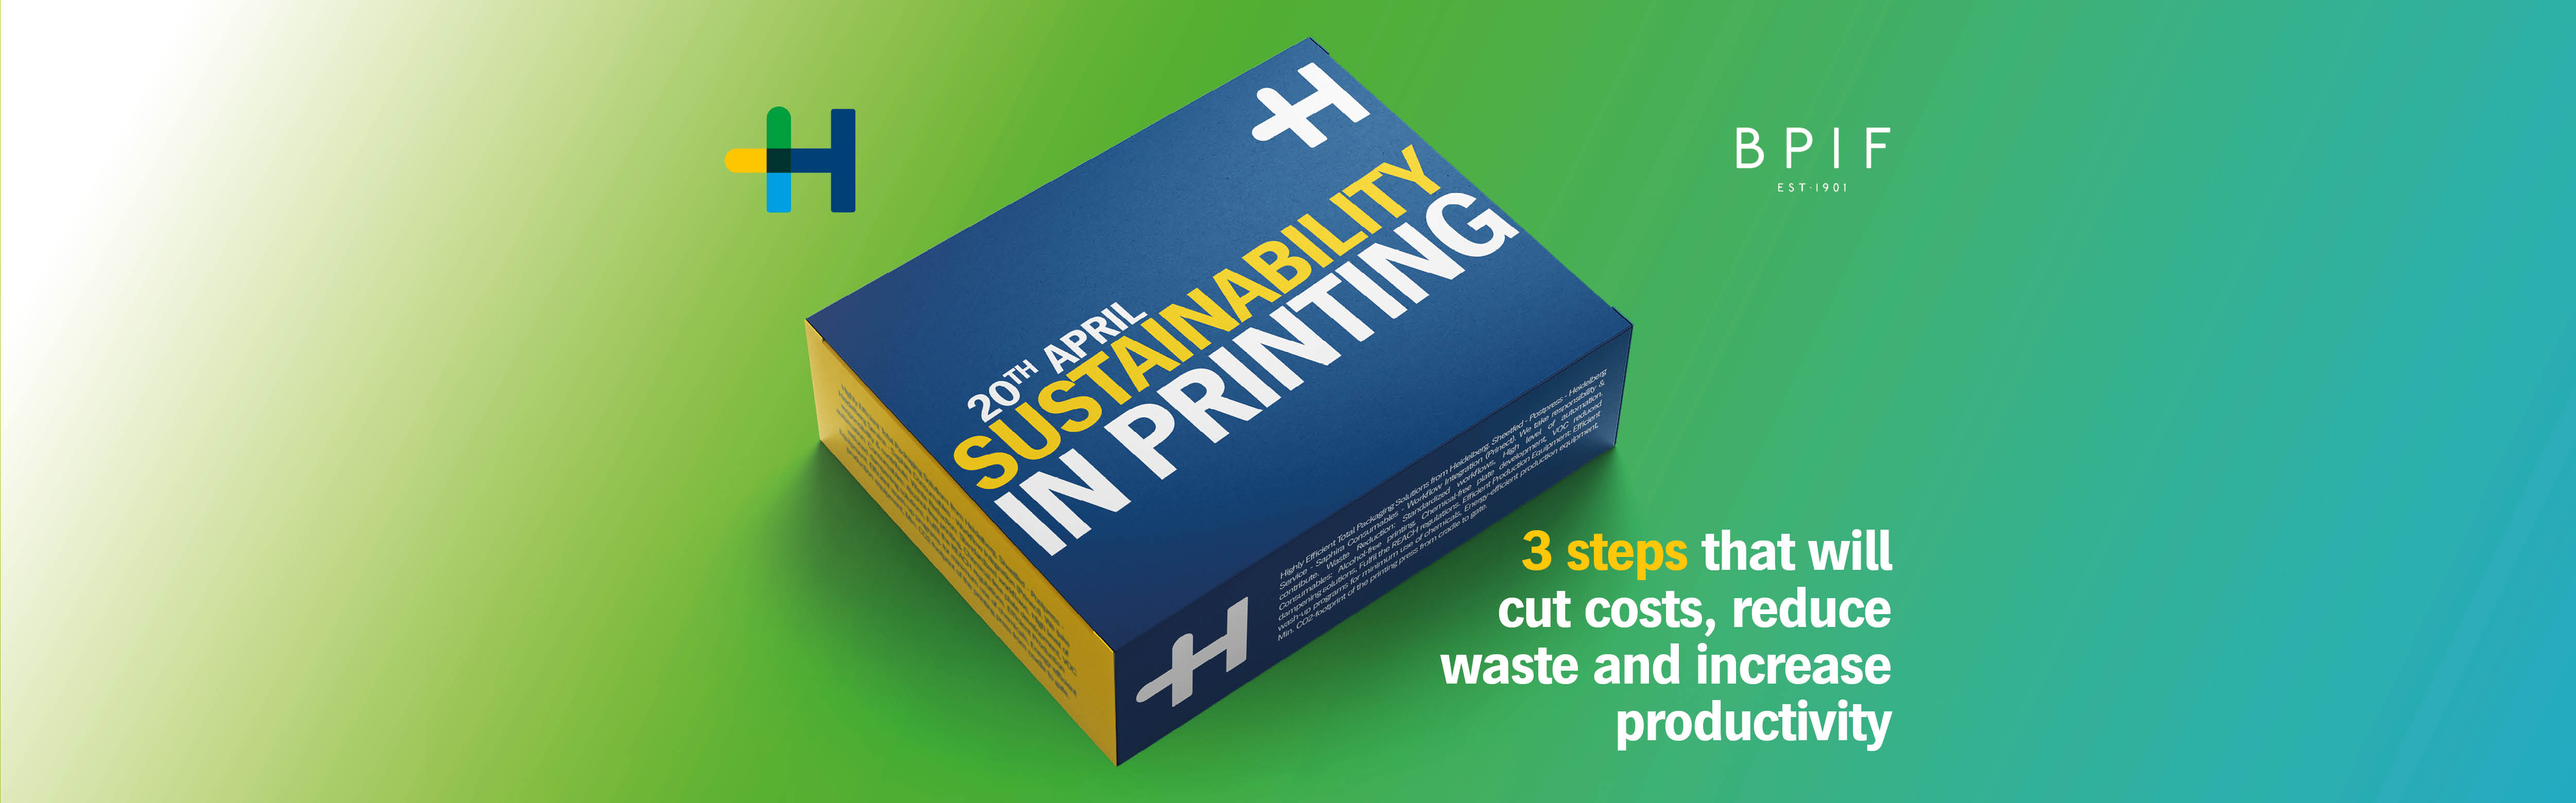 Heidelberg - Sustainability in printing